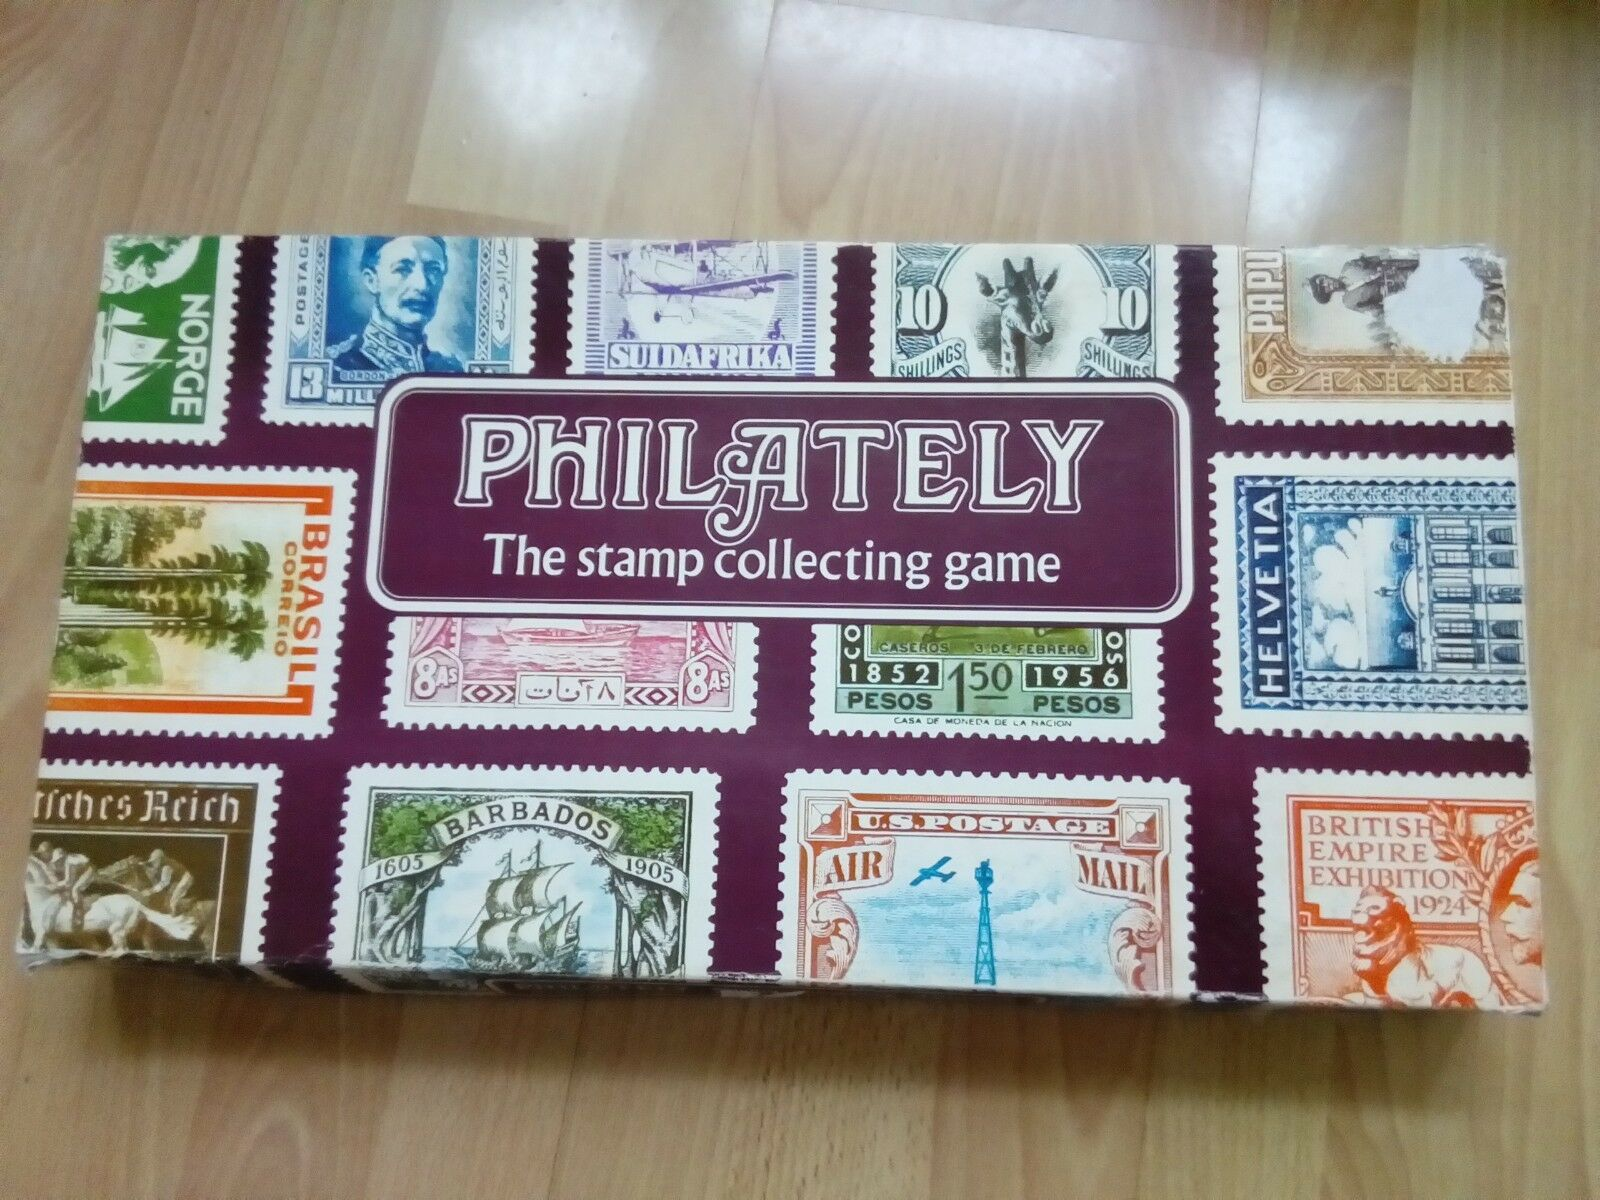 PHILATELY BOARD GAME THE STAMP COLLECTING GAME